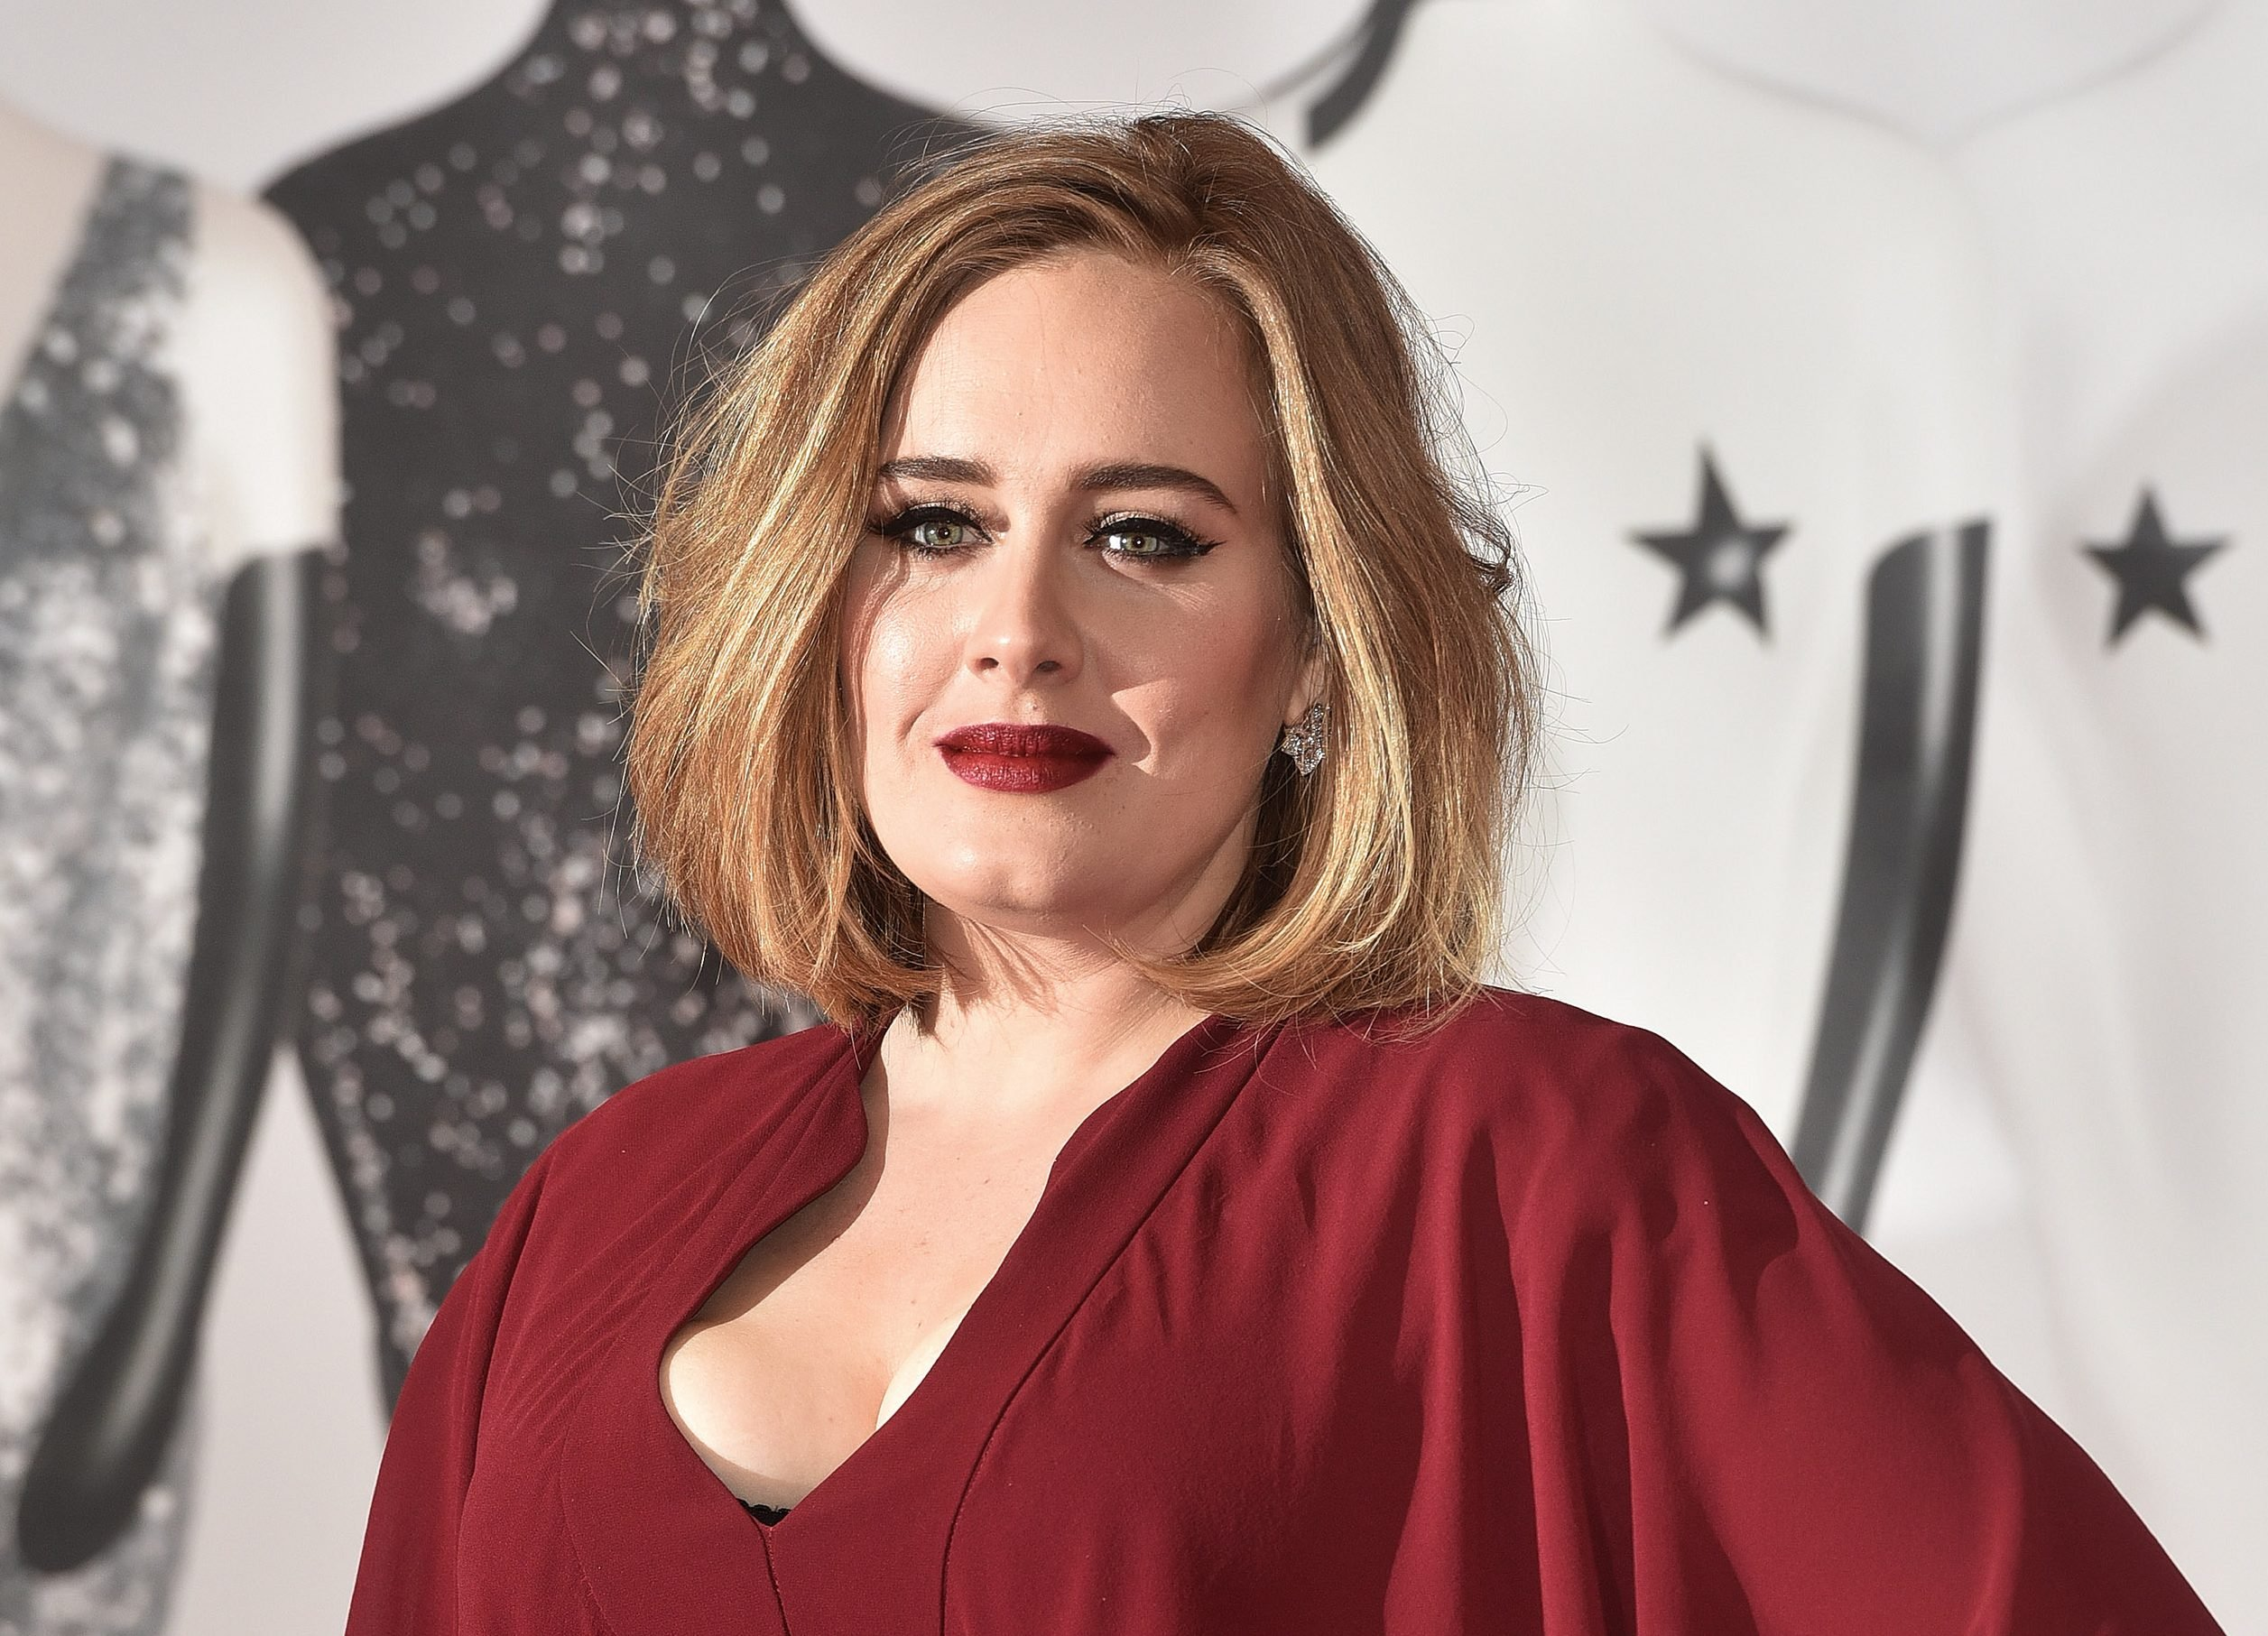 Adele's Son Gets Injured By Fireworks At Her Tour Rehearsal